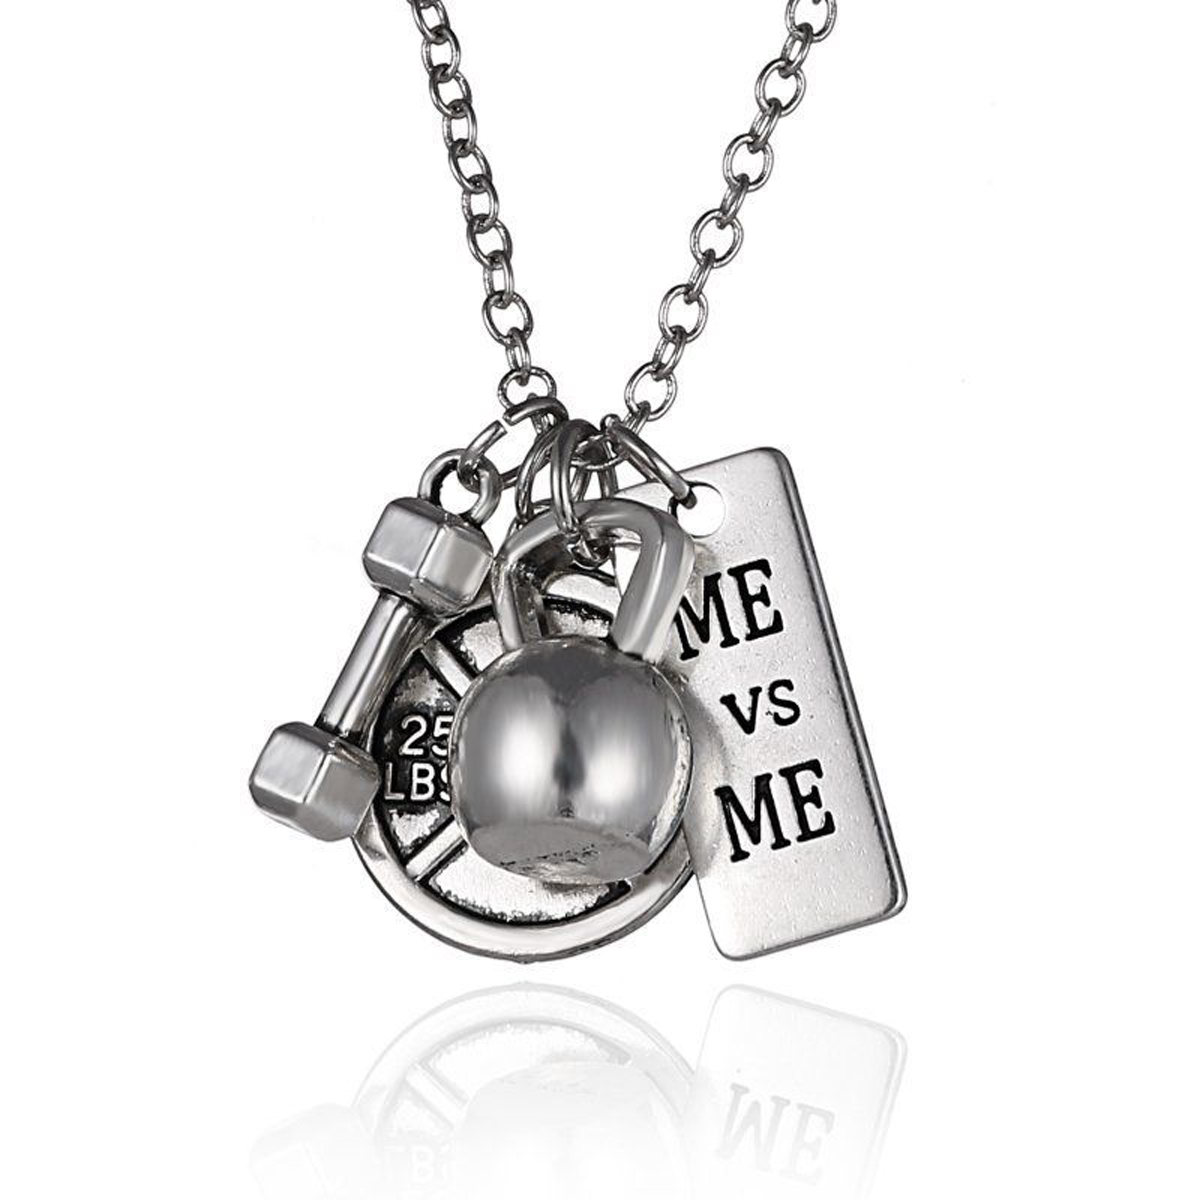 HAMANY Mens Necklace Stainless Steel Chain Polished Simple Silver Tone 18-30 Inch with a Velvet Bag